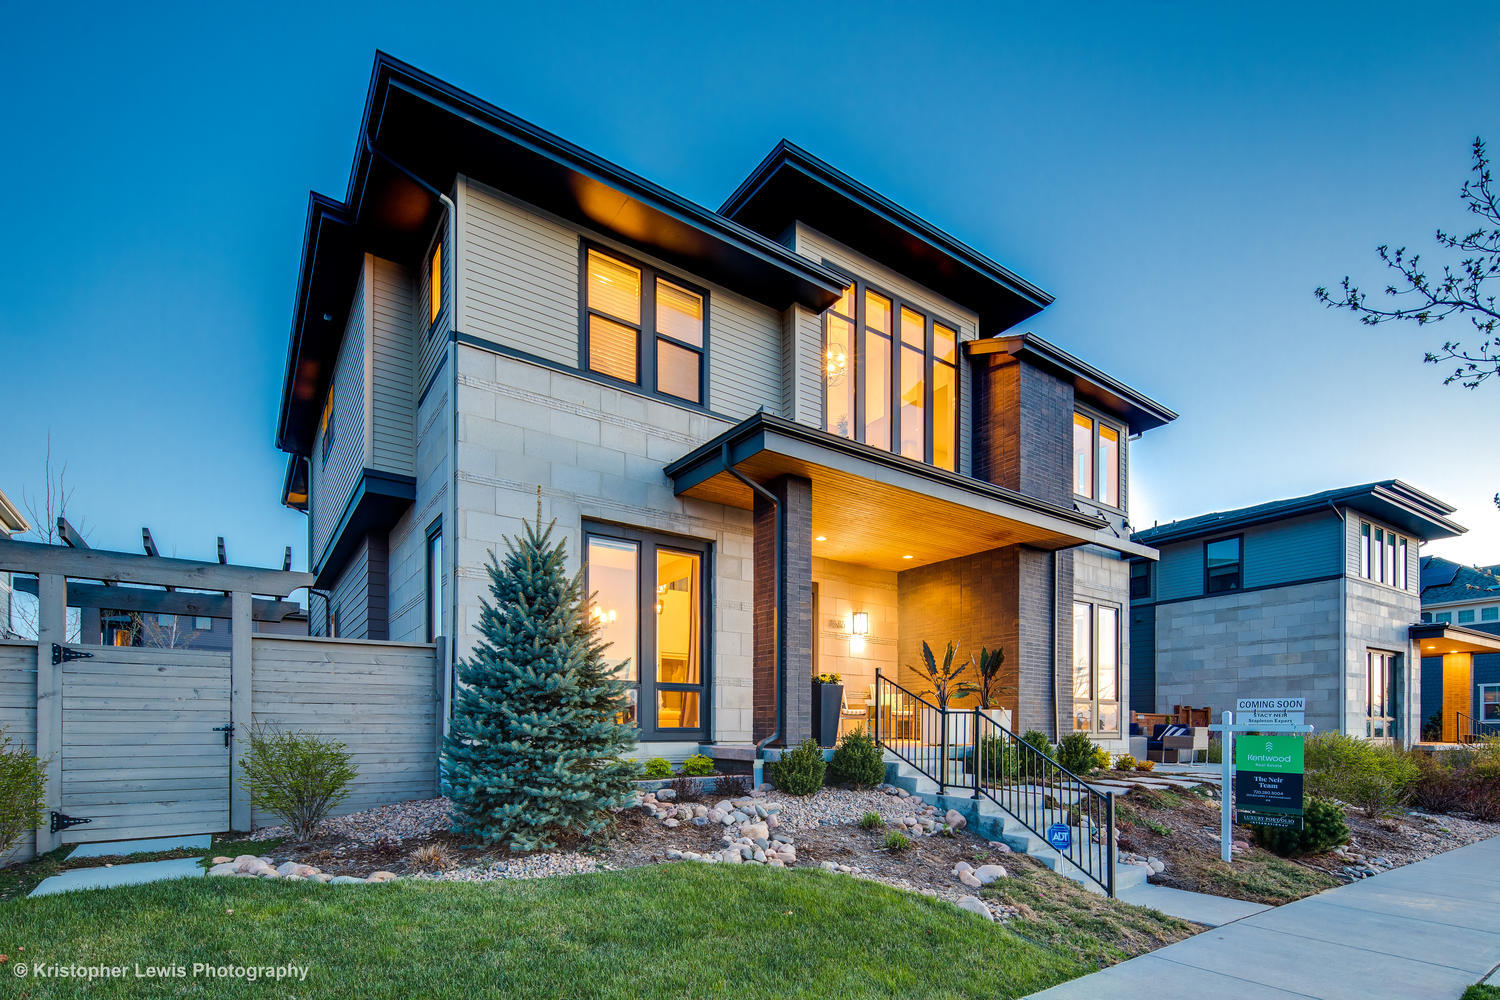 369_302_property_8586-e-51st-ave-denver-co-large-058-61-exteriortwilight6-1500x1000-72dpi-20190425011220.jpg